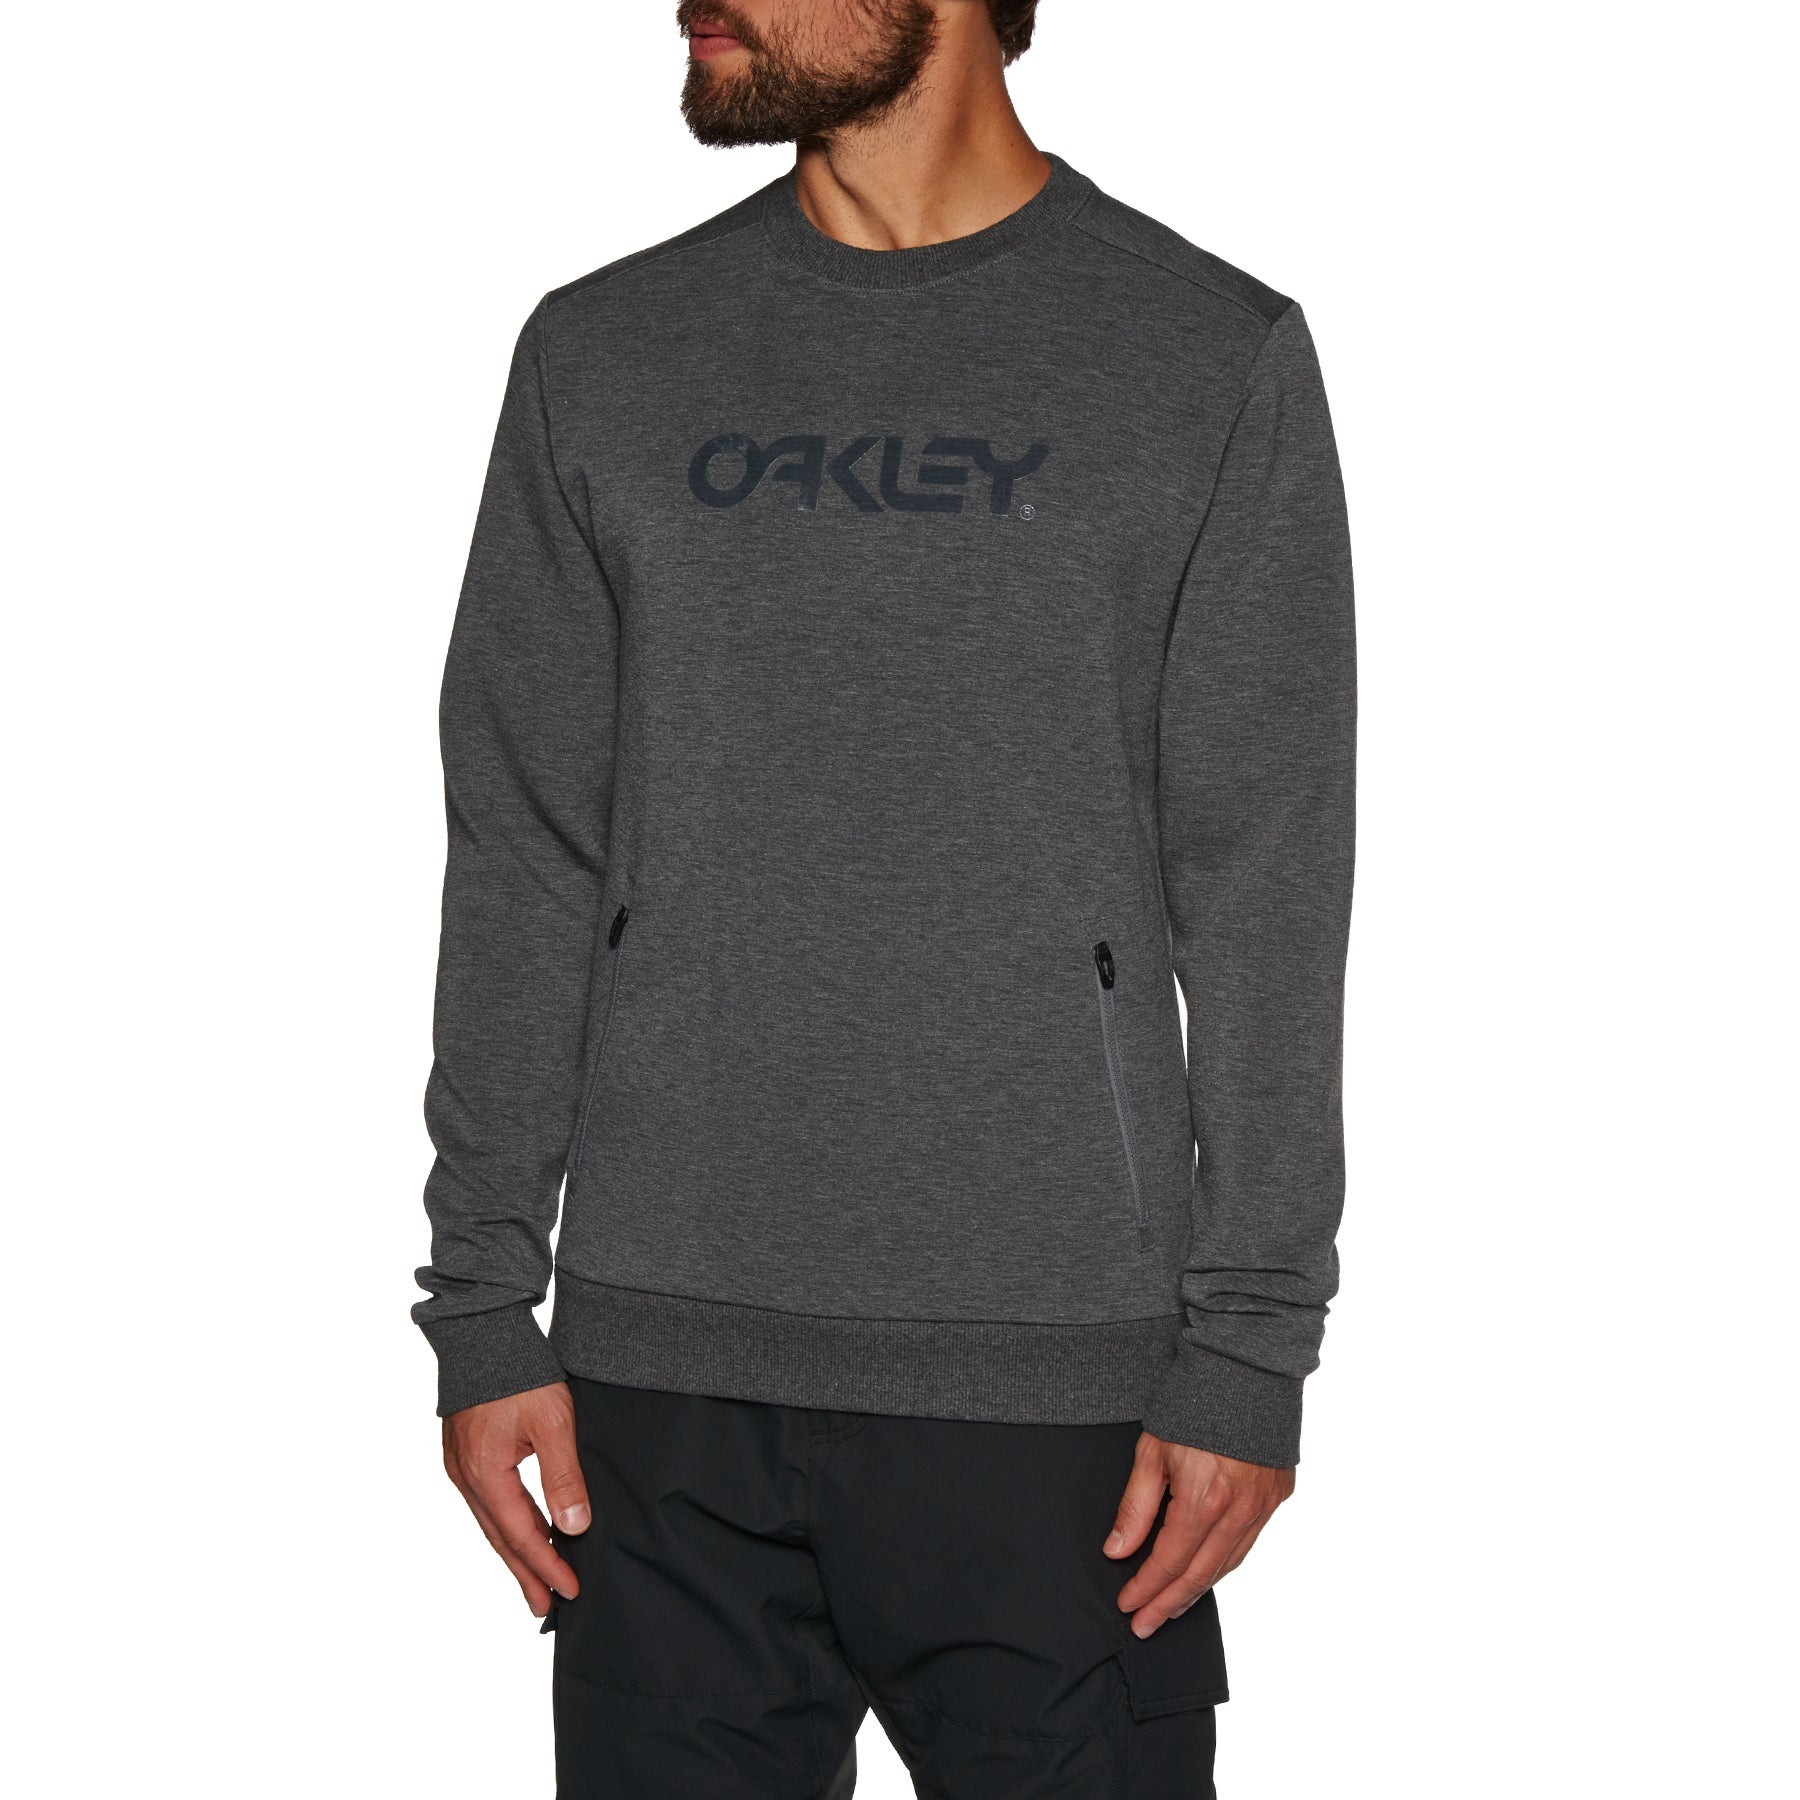 Oakley Crewneck Scuba Fleece Sweater - Forged Iron